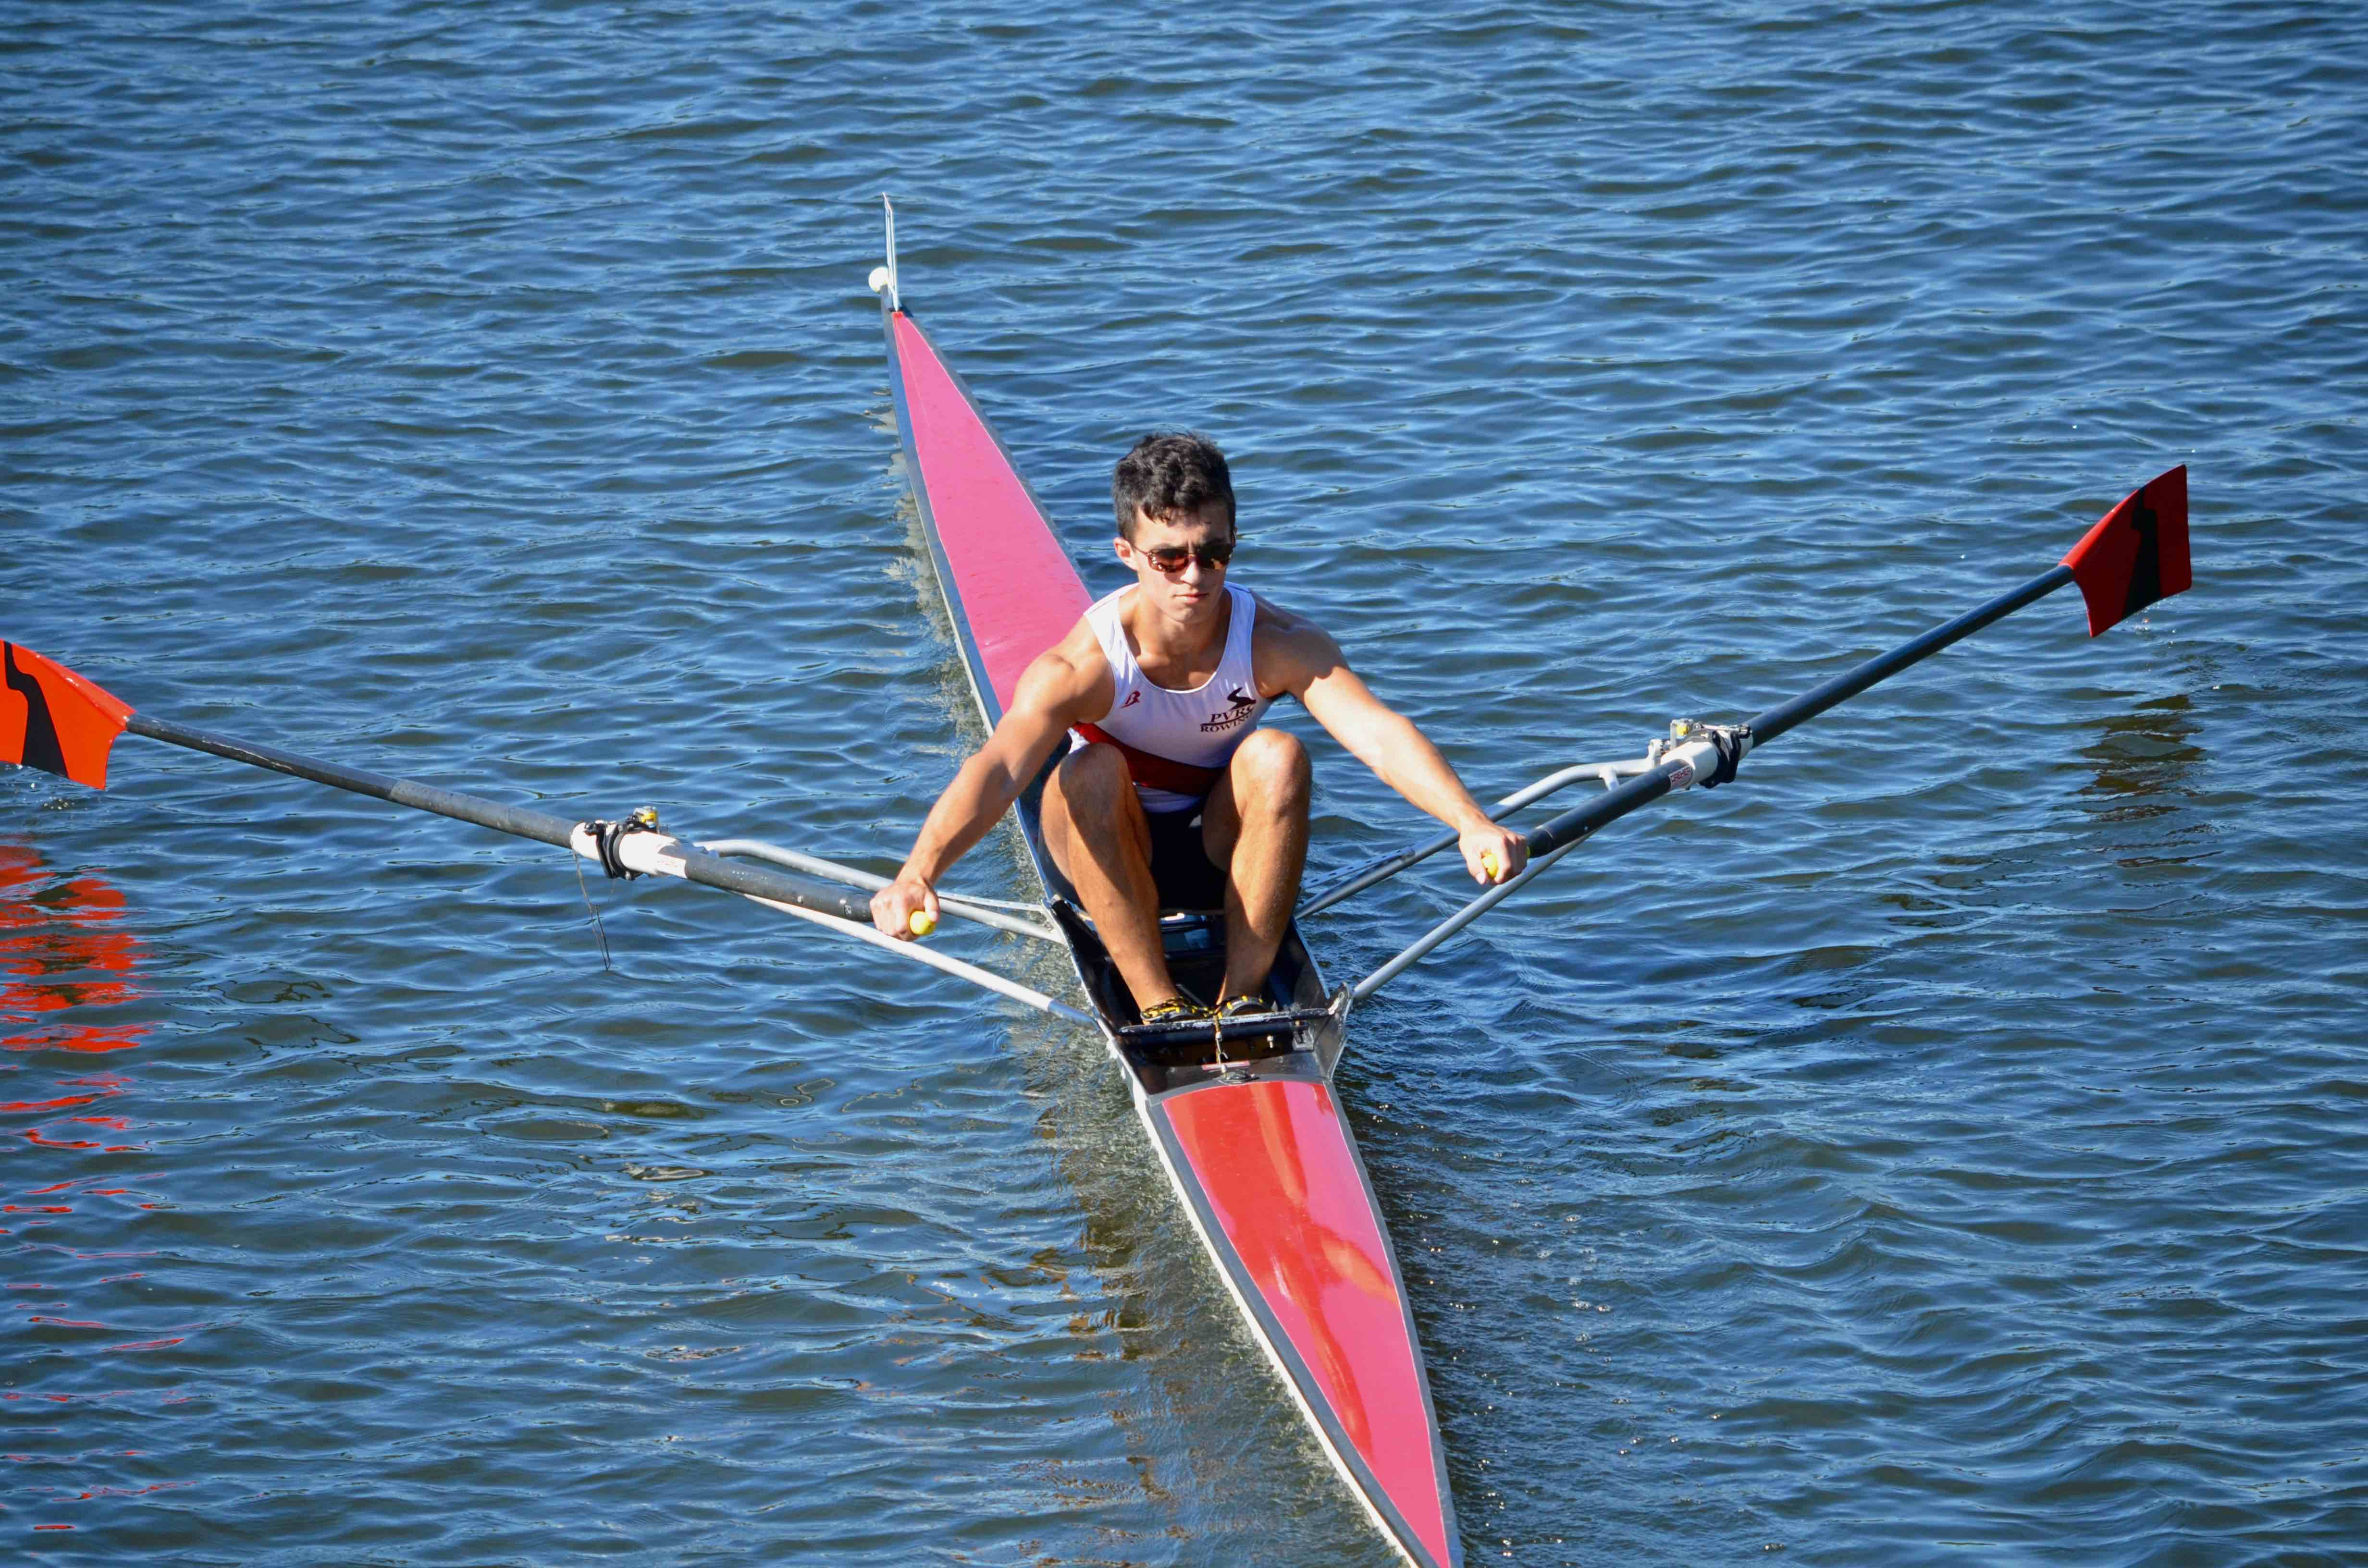 PVRC Youth Rowing, Springfield Youth Rowing, Learn to Row